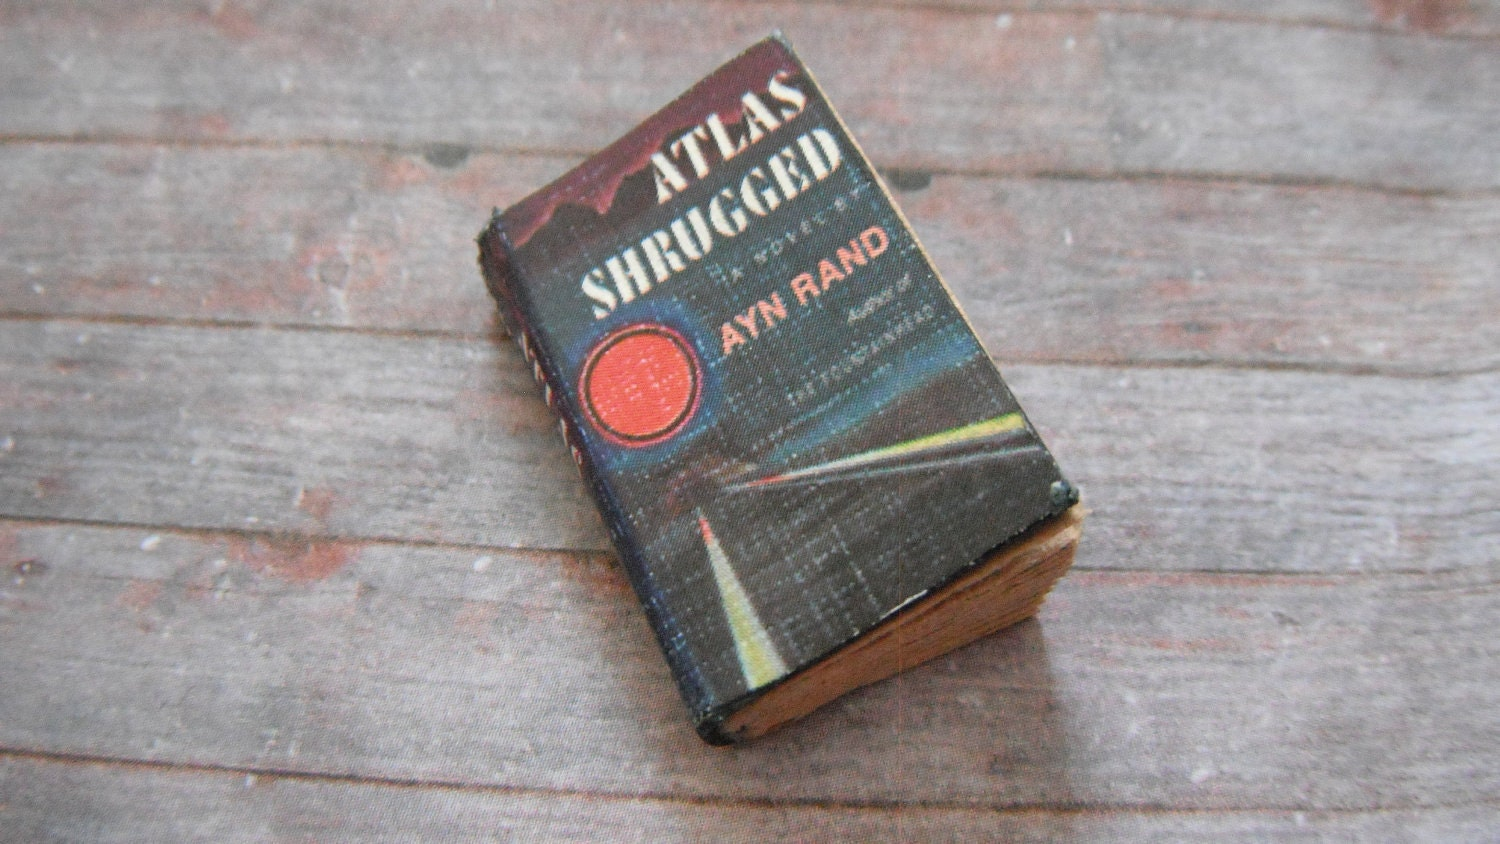 atlas shrugged character description Download atlas shrugged audiobook publisher description who is john galt i found myself laughing and answering questions that were meant to be rhetorical or berating one of her characters her greatest work ron | 8/7/2016.